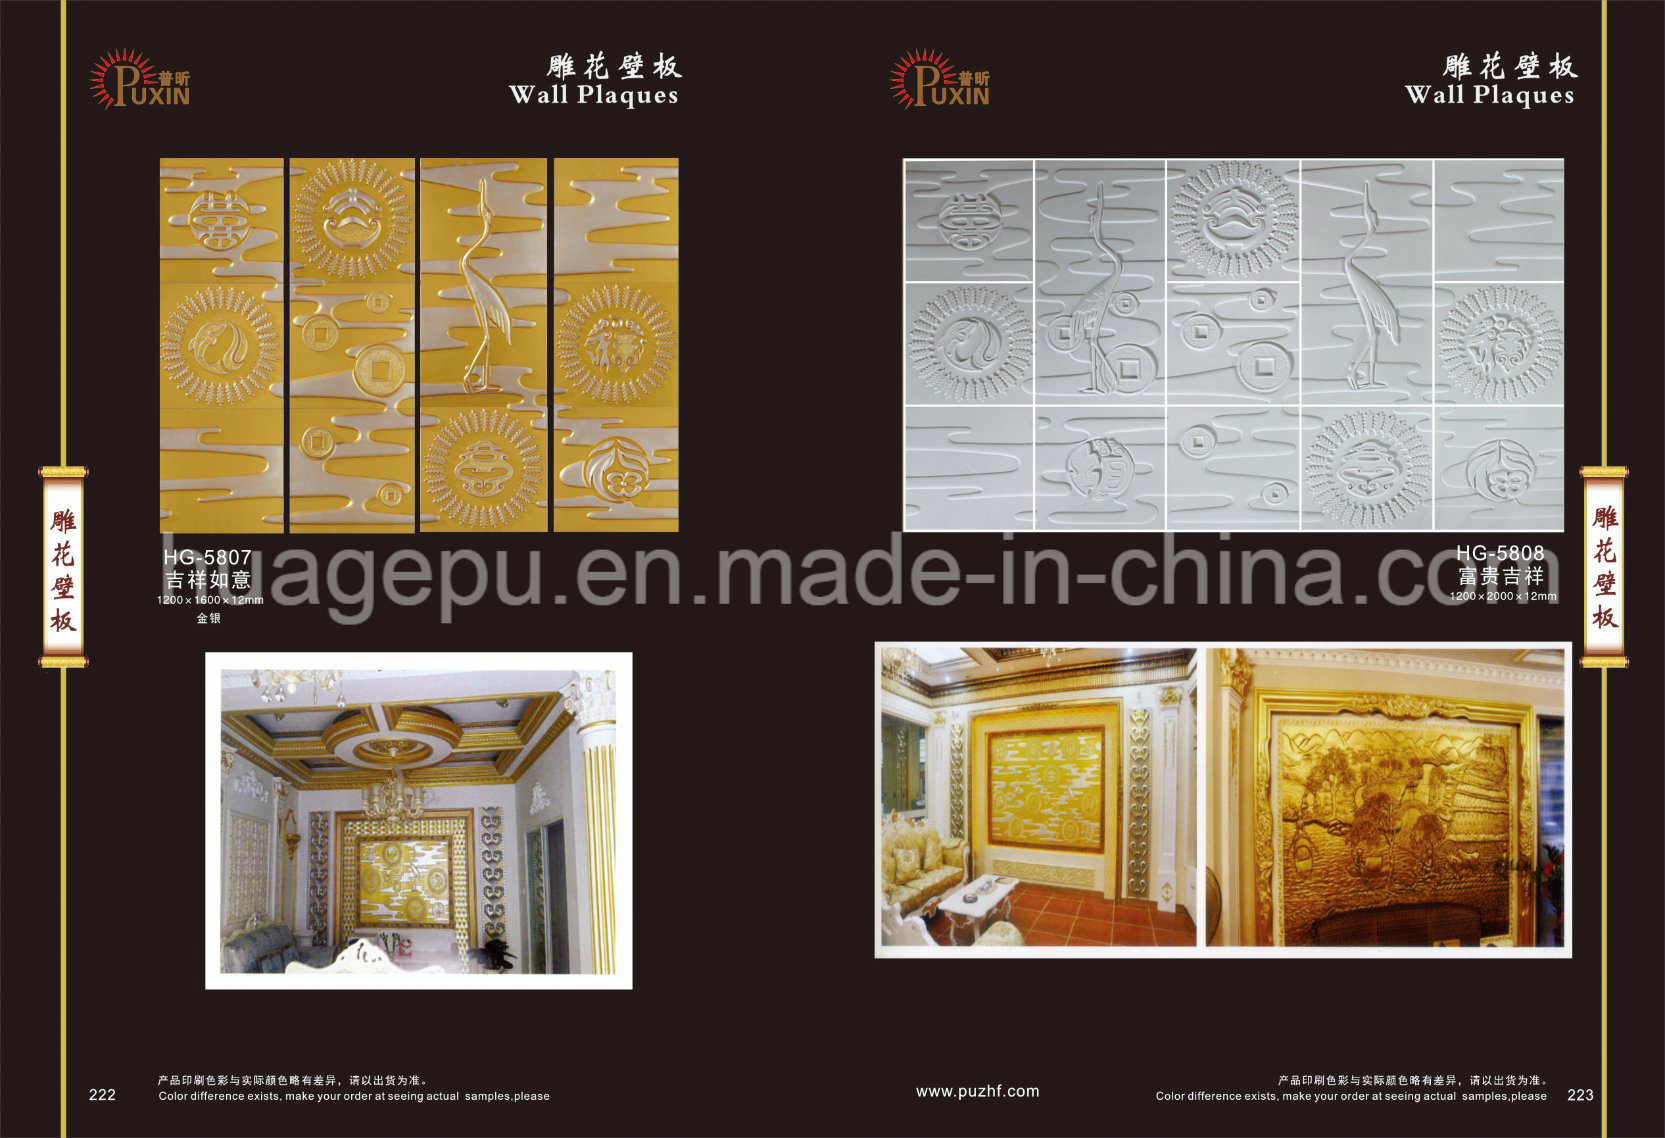 Artistic Polyurethane Wall Plaques for Interior Decoration